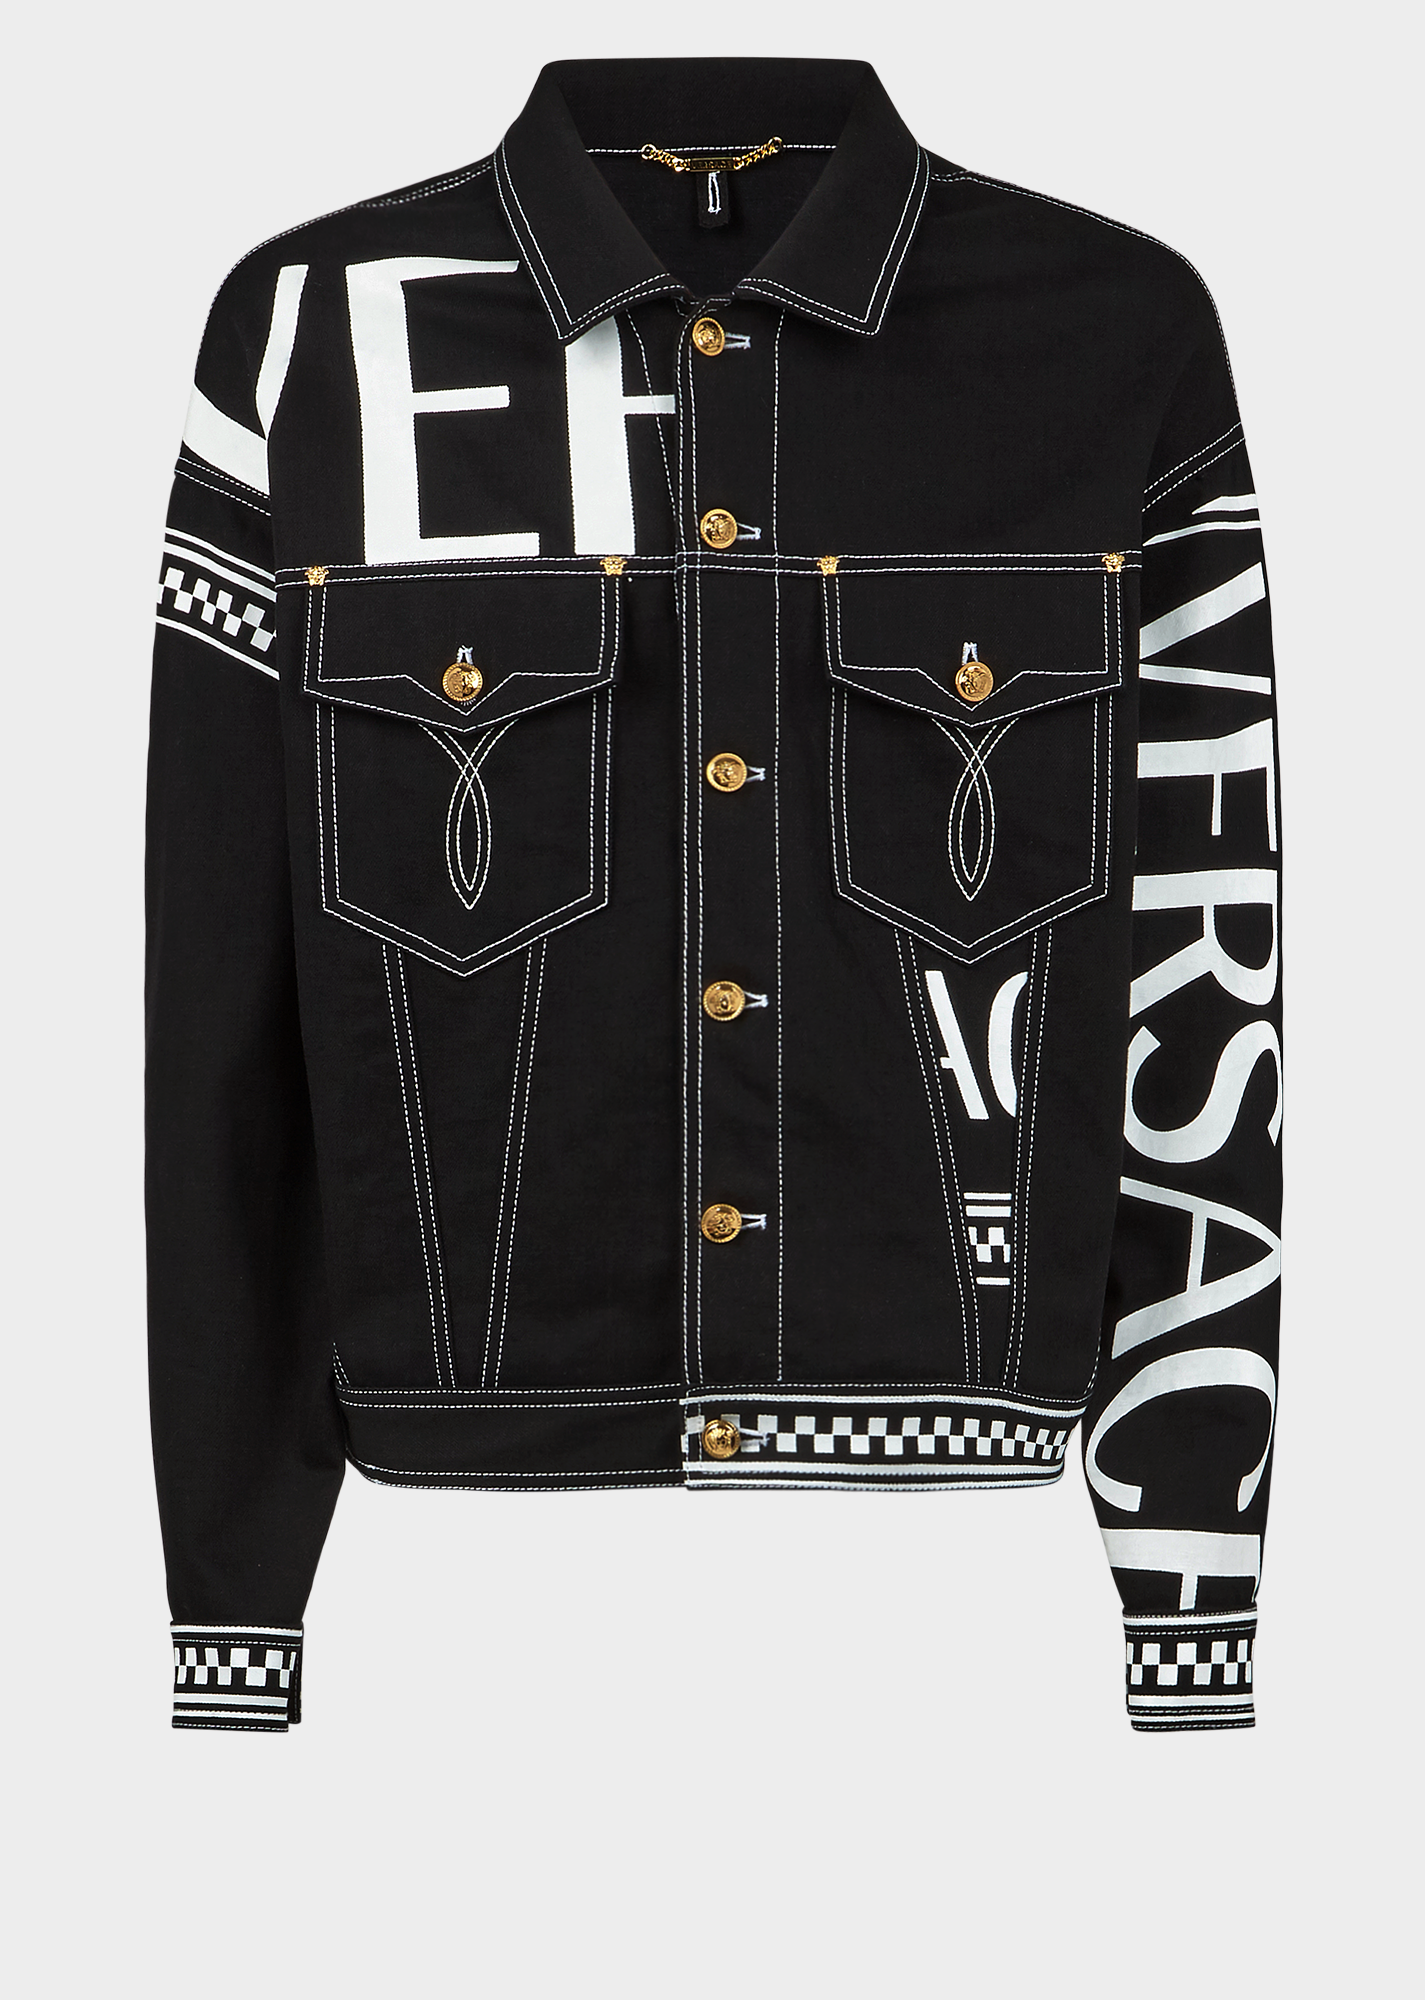 84c8d59156 VERSACE 90s Vintage Logo Denim Jacket. #versace #cloth | Versace in ...